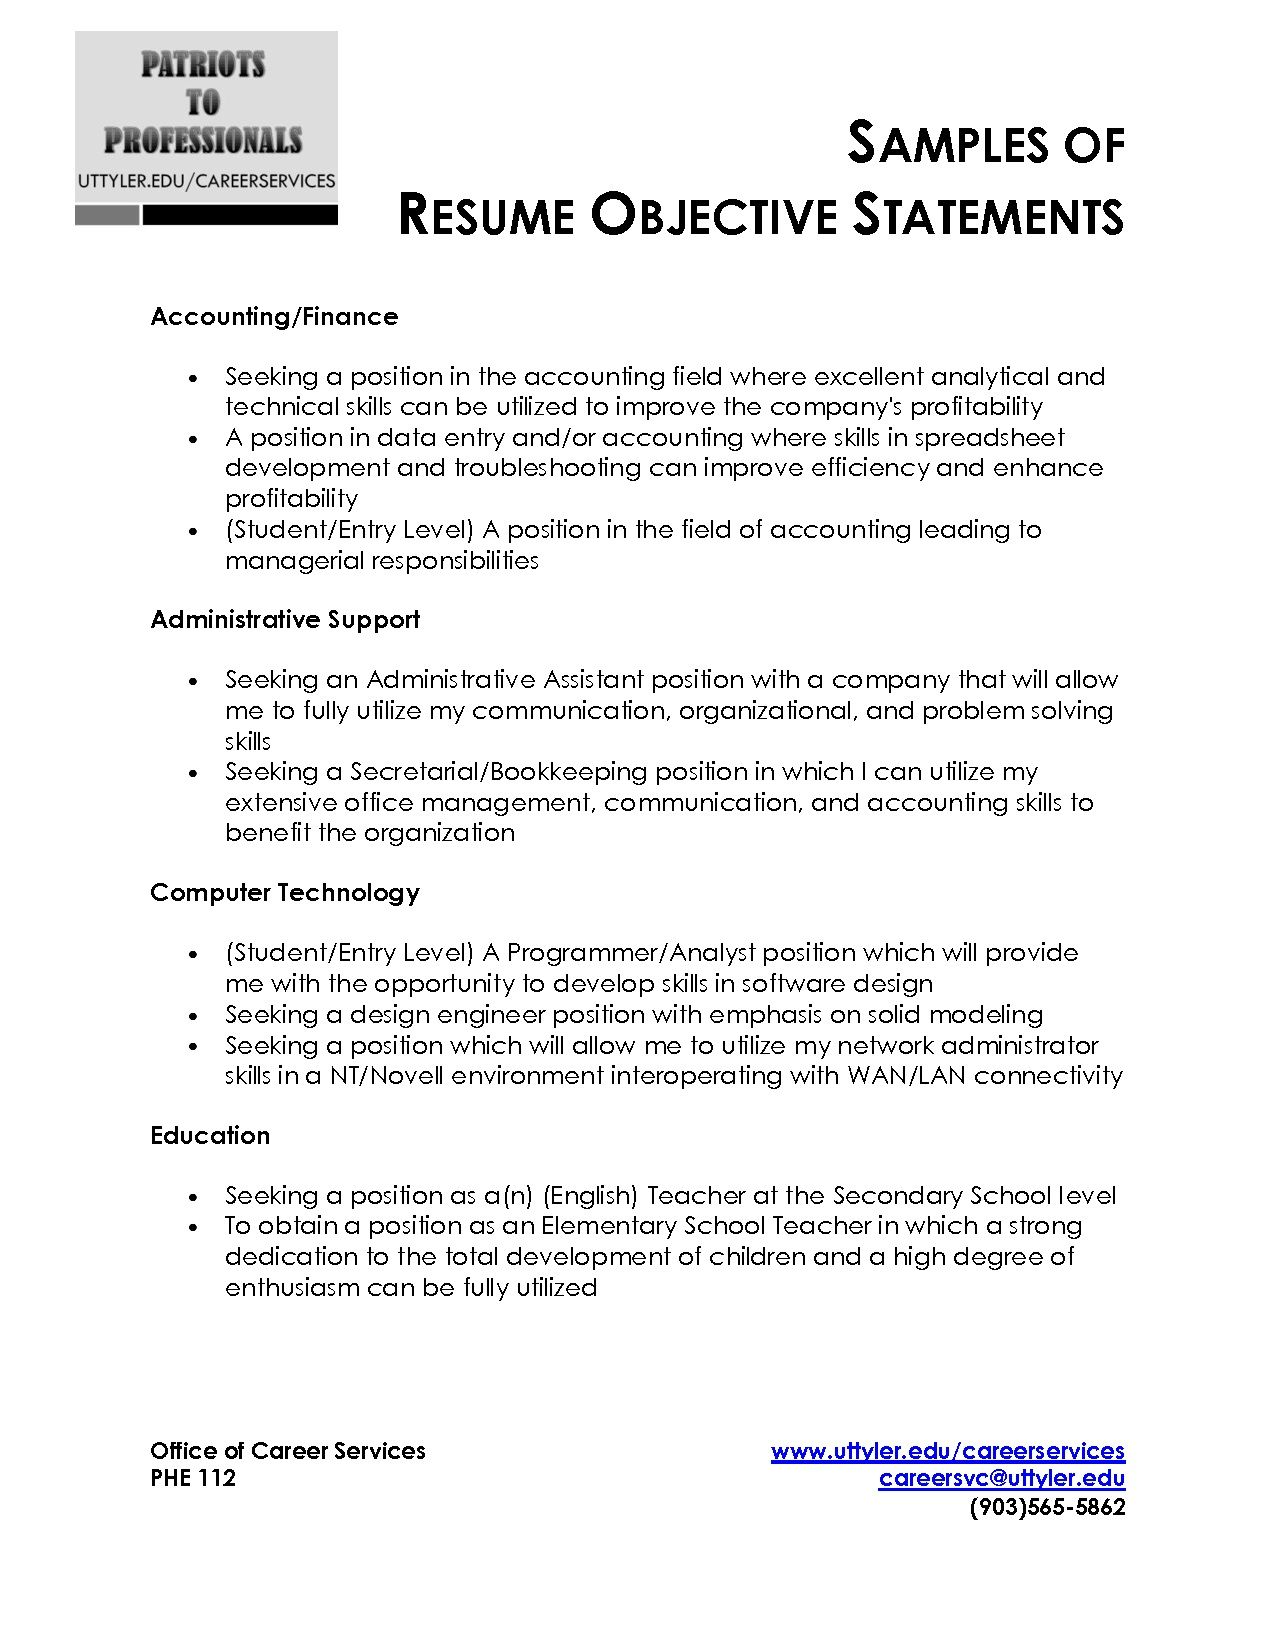 pin by rachel franco on resume writing resume objective